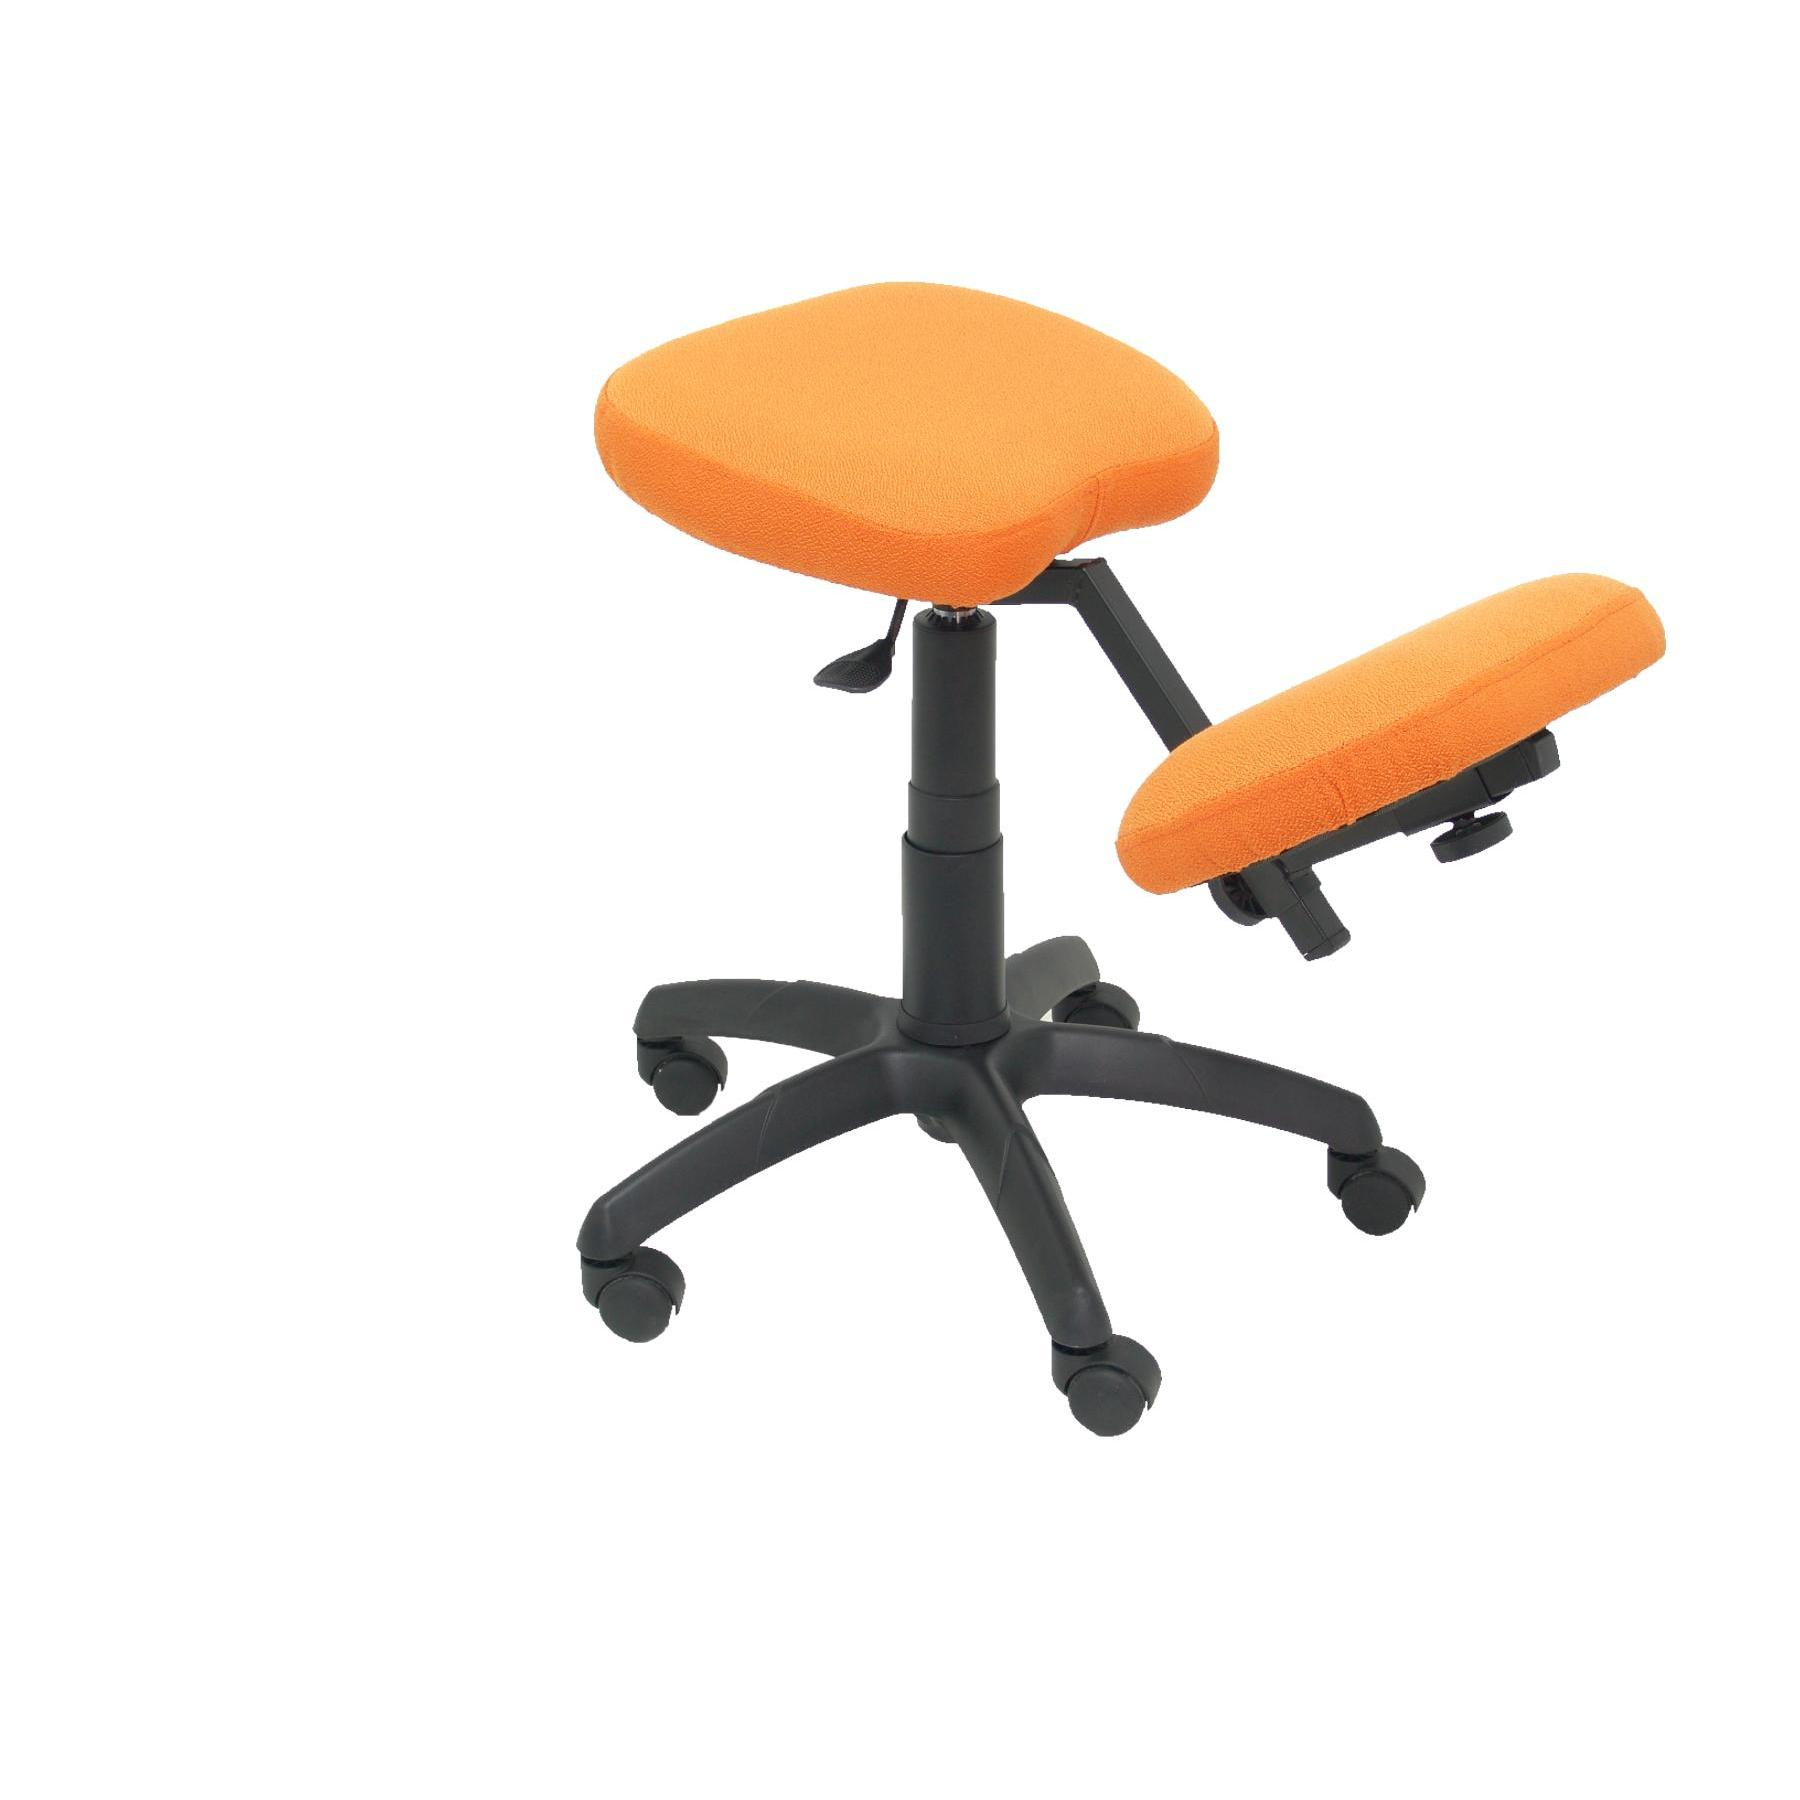 Office's Stool Ergonomic Swivel And Dimmable In High Altitude Up Seat Upholstered In BALI Tissue Orange (RODILLER